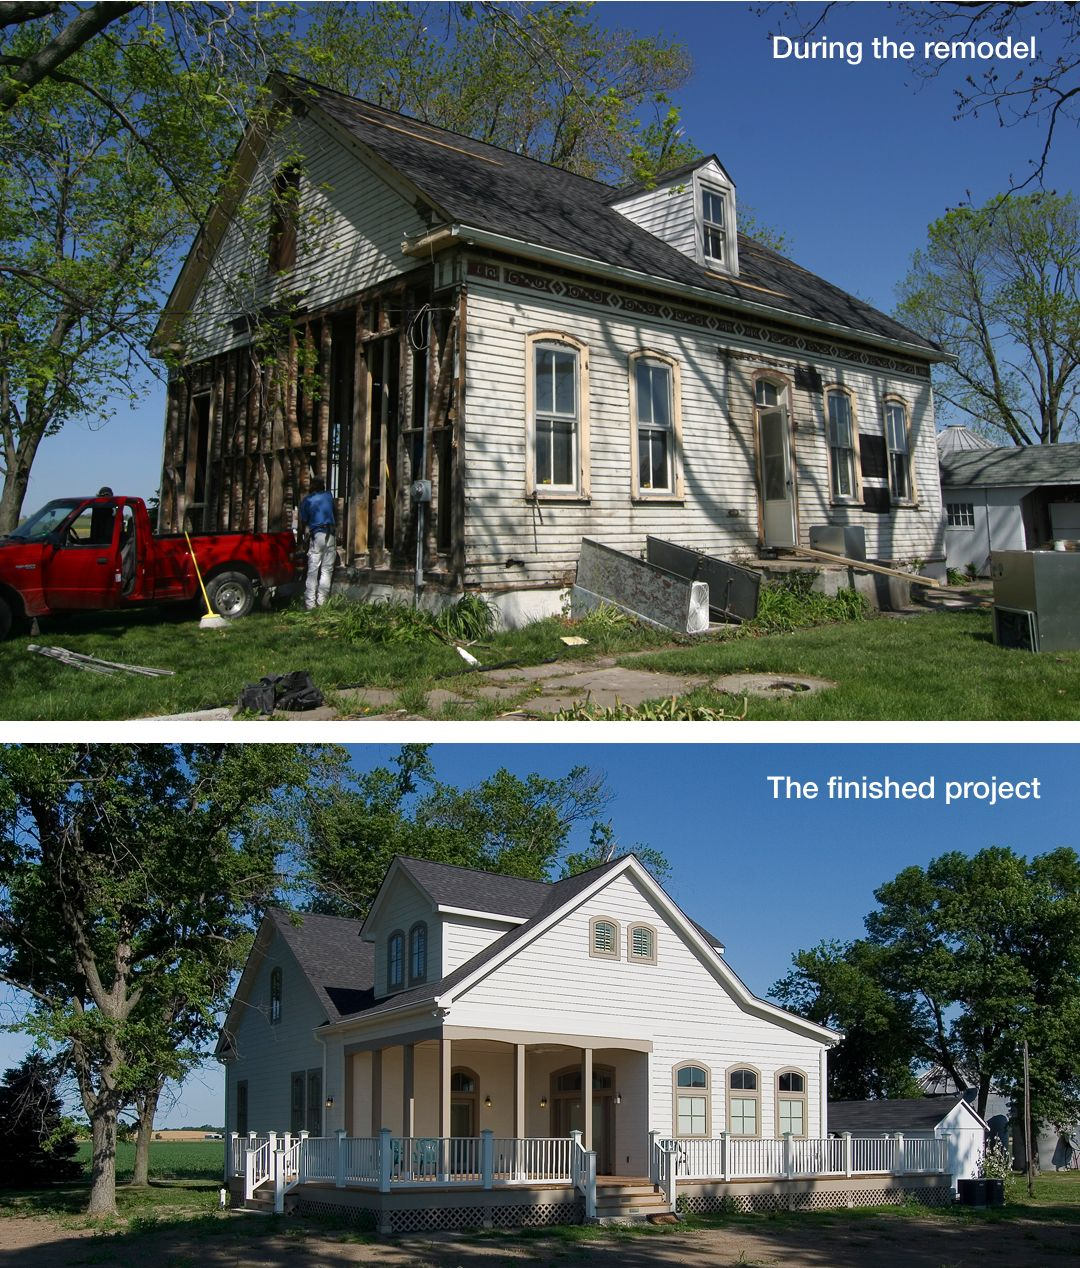 Renovated Farmhouse Before And After Old Farmhouse Before And After Bing Images Fun Old